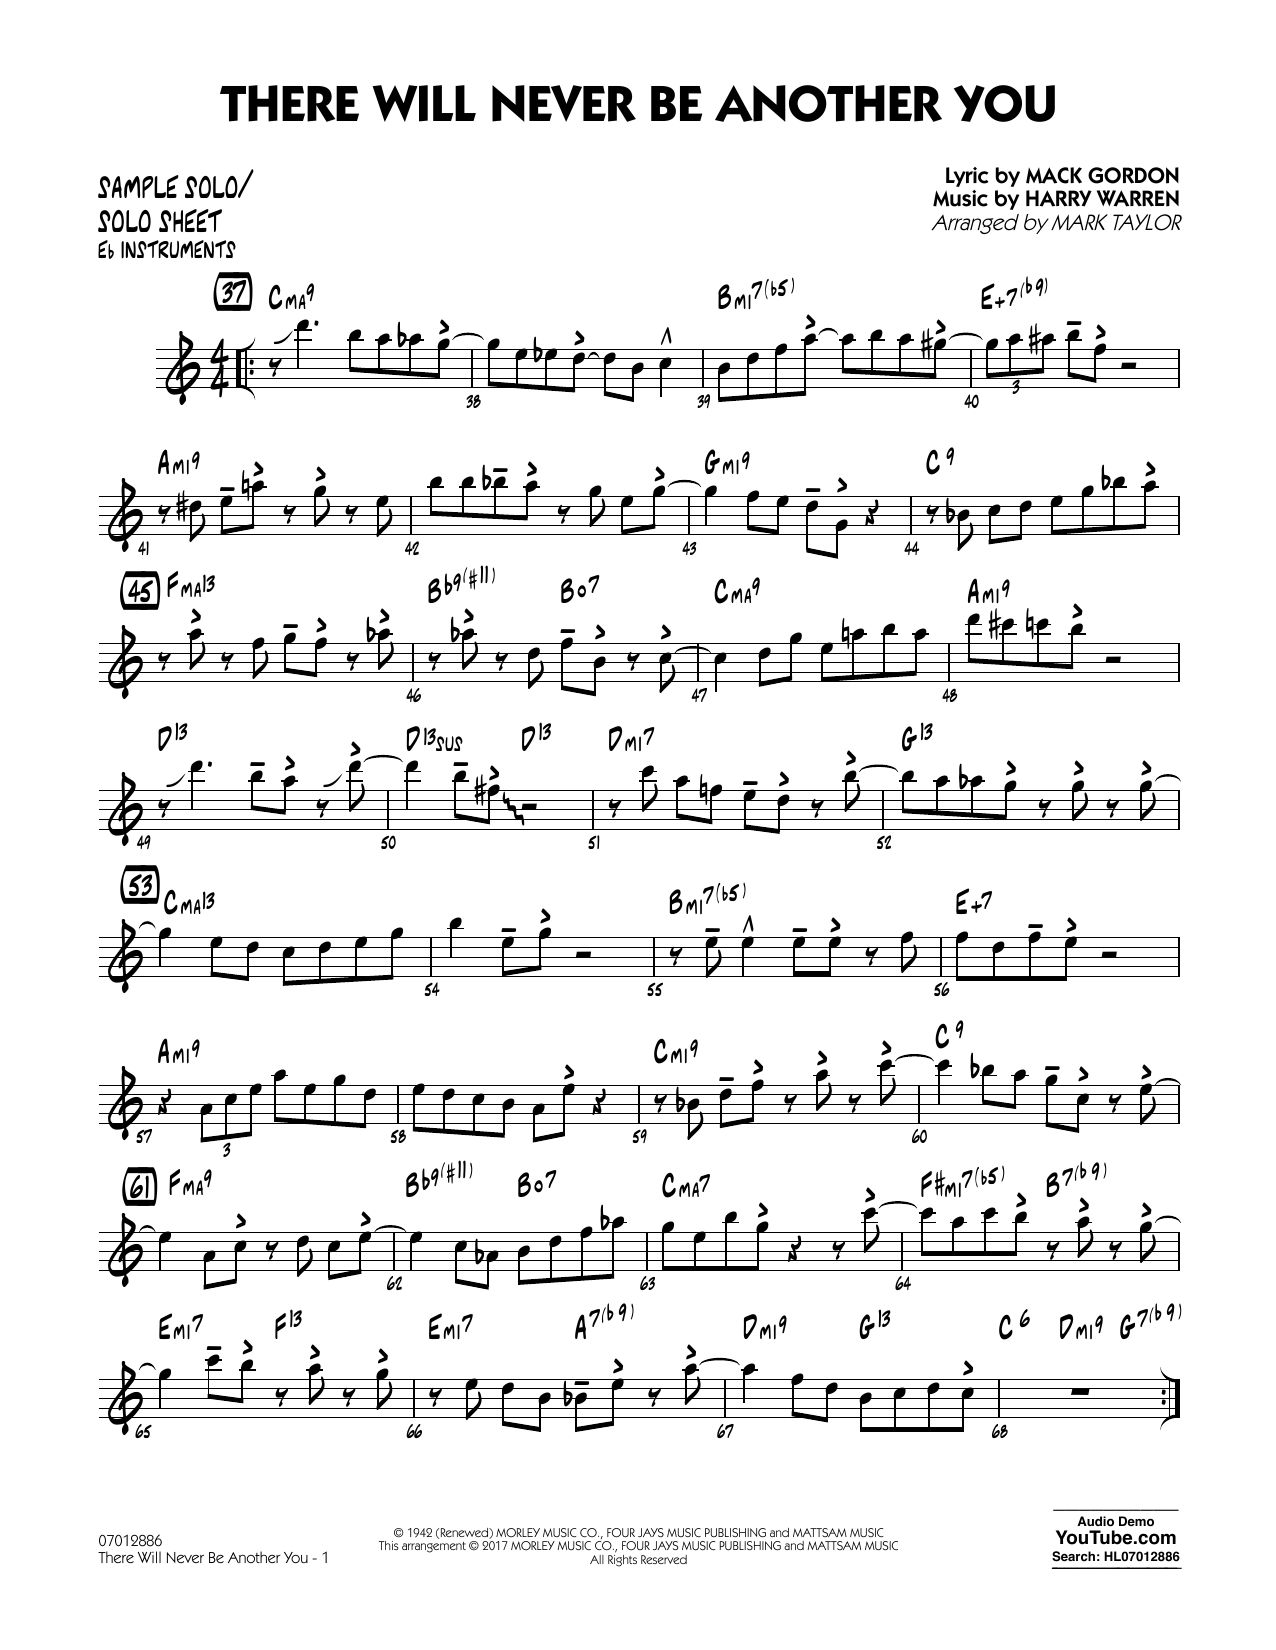 There Will Never Be Another You - Sample Solo/Solo Sheet Eb Inst (Jazz Ensemble)